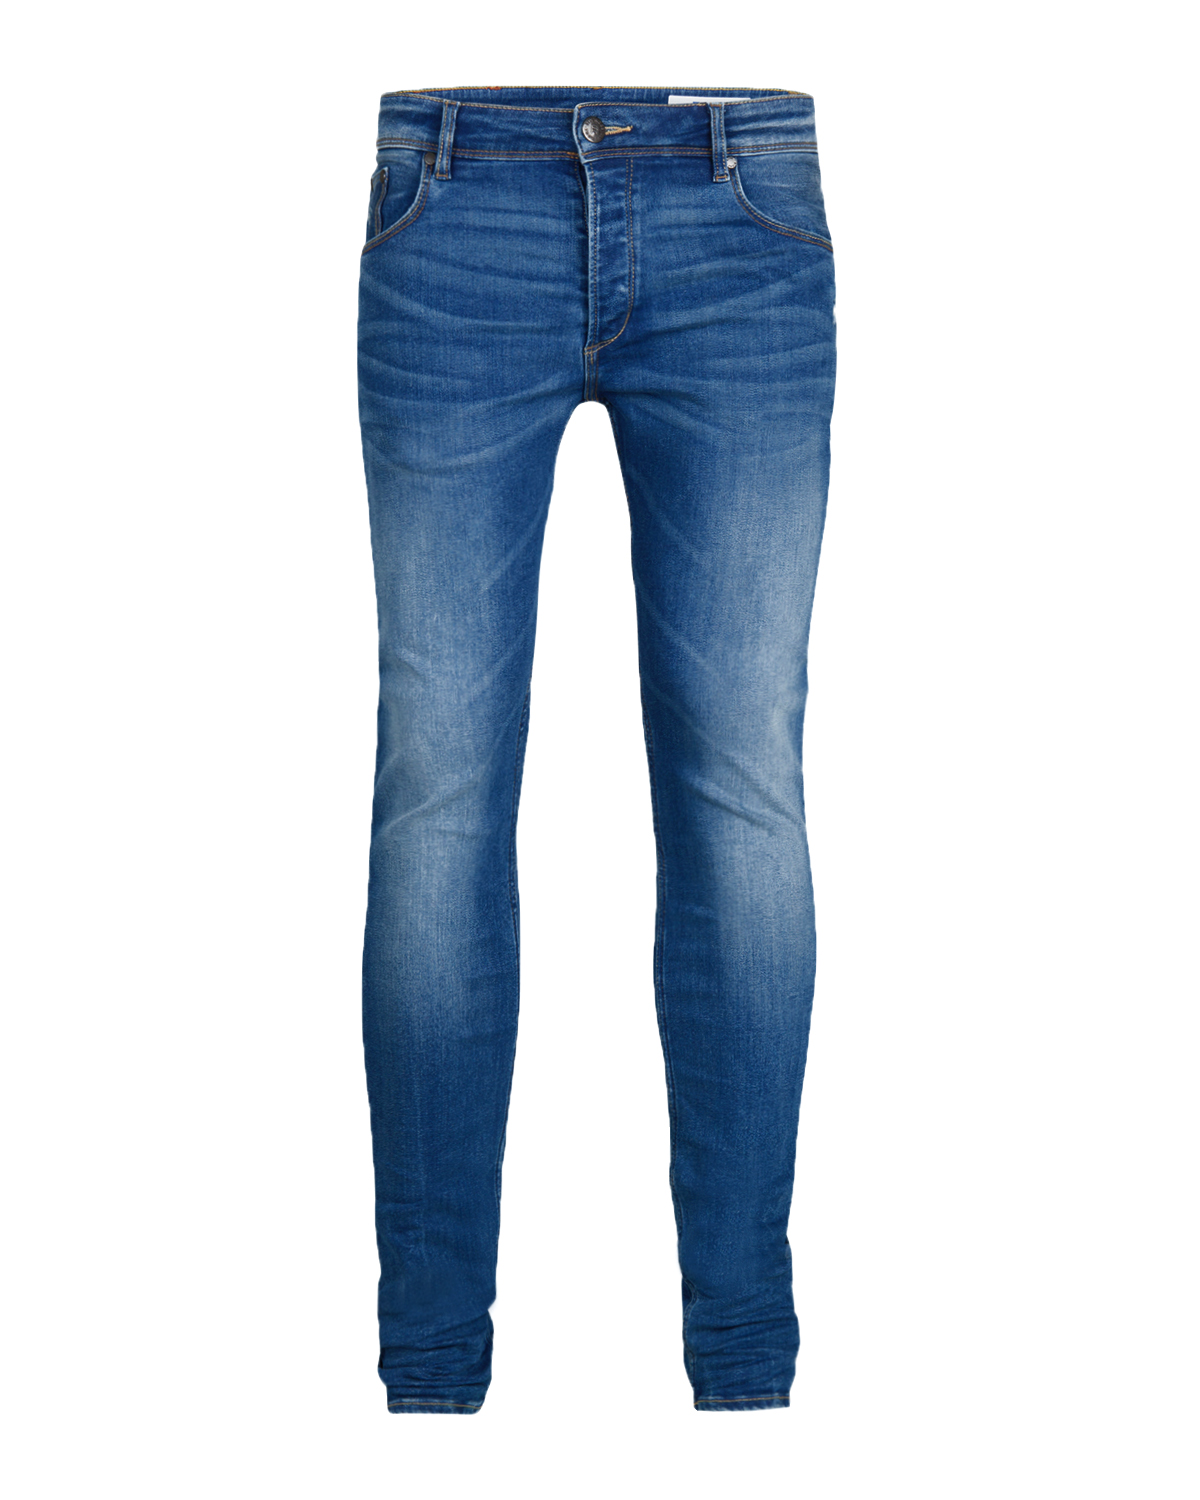 JEANS SKINNY TAPERED SUPER STRETCH HOMME_JEANS SKINNY TAPERED SUPER STRETCH HOMME, Bleu foncé